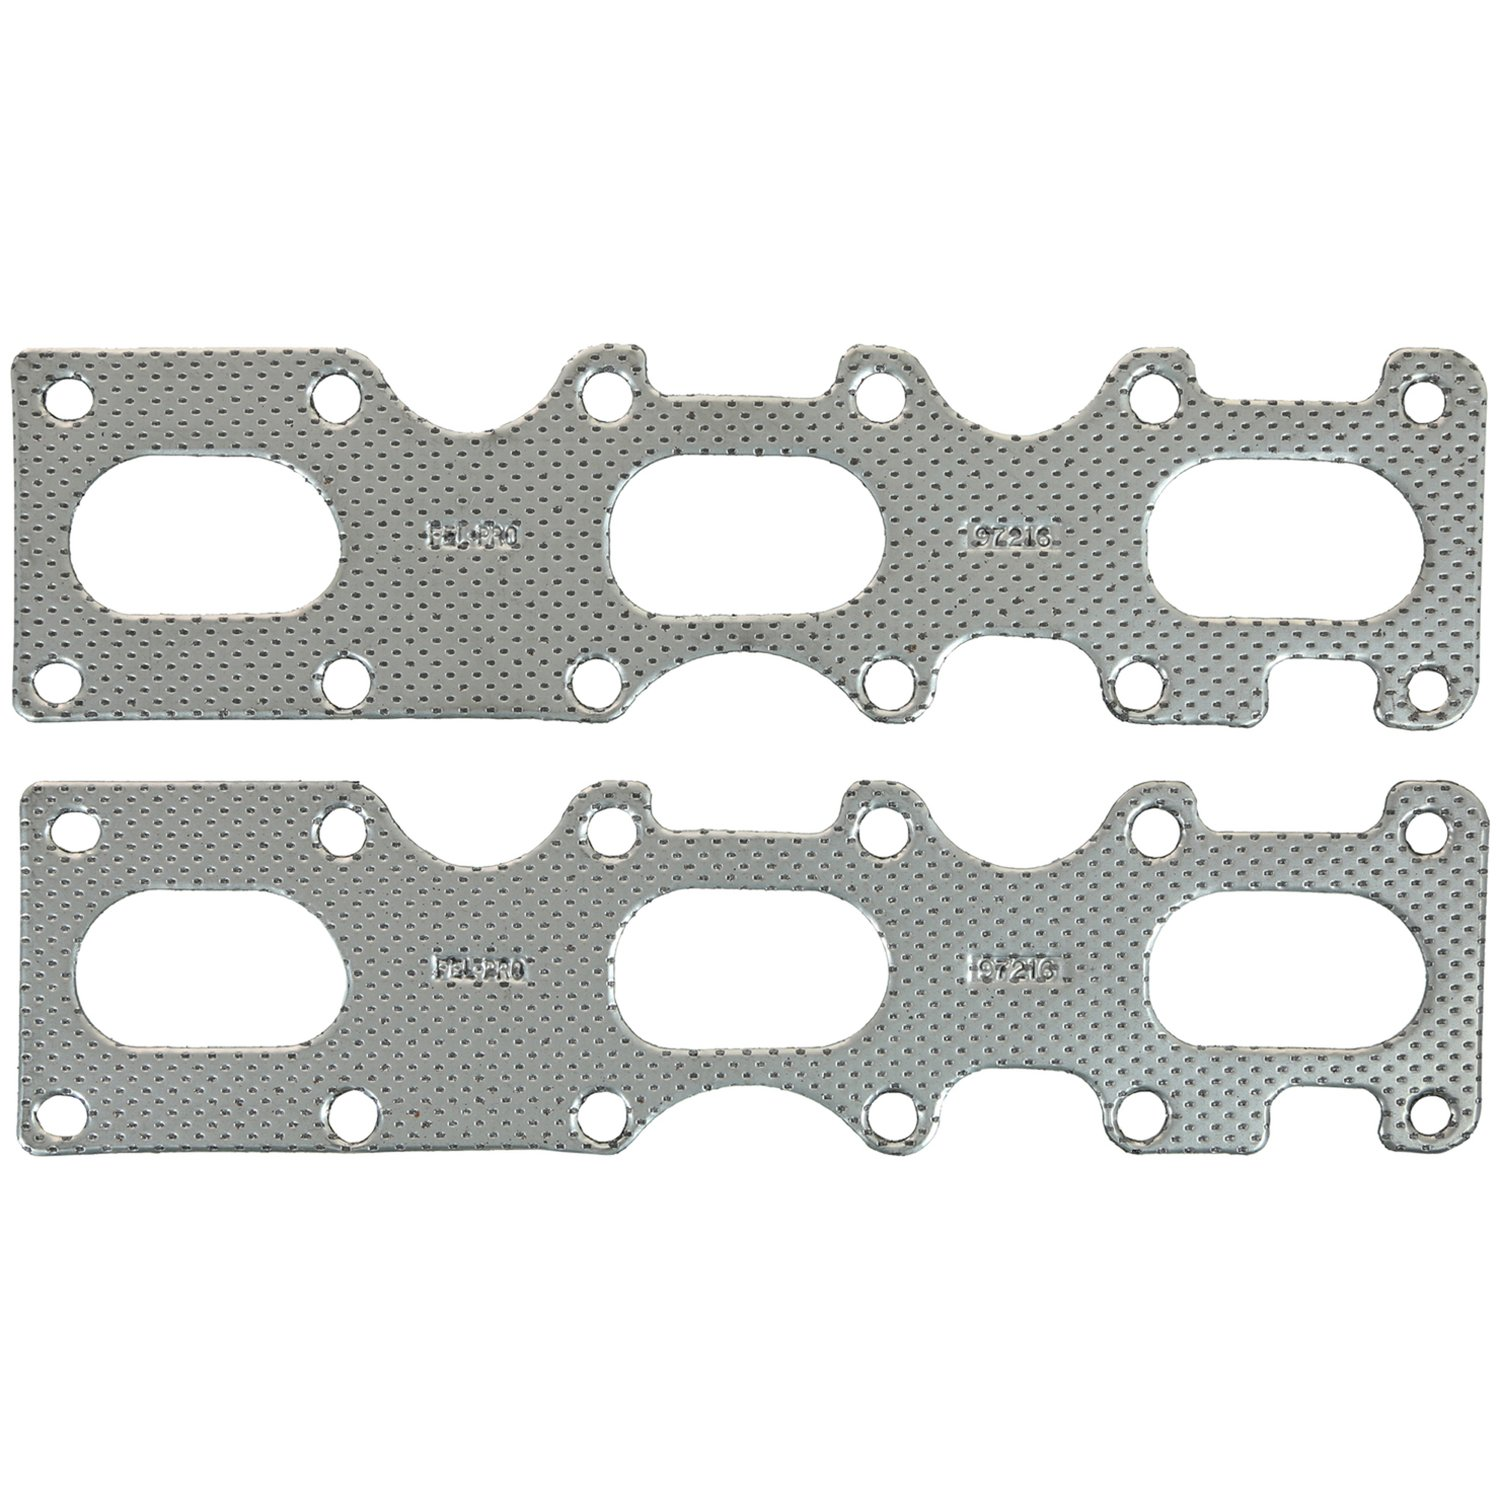 Fel-Pro MS 97216 Exhaust Manifold Gasket Set